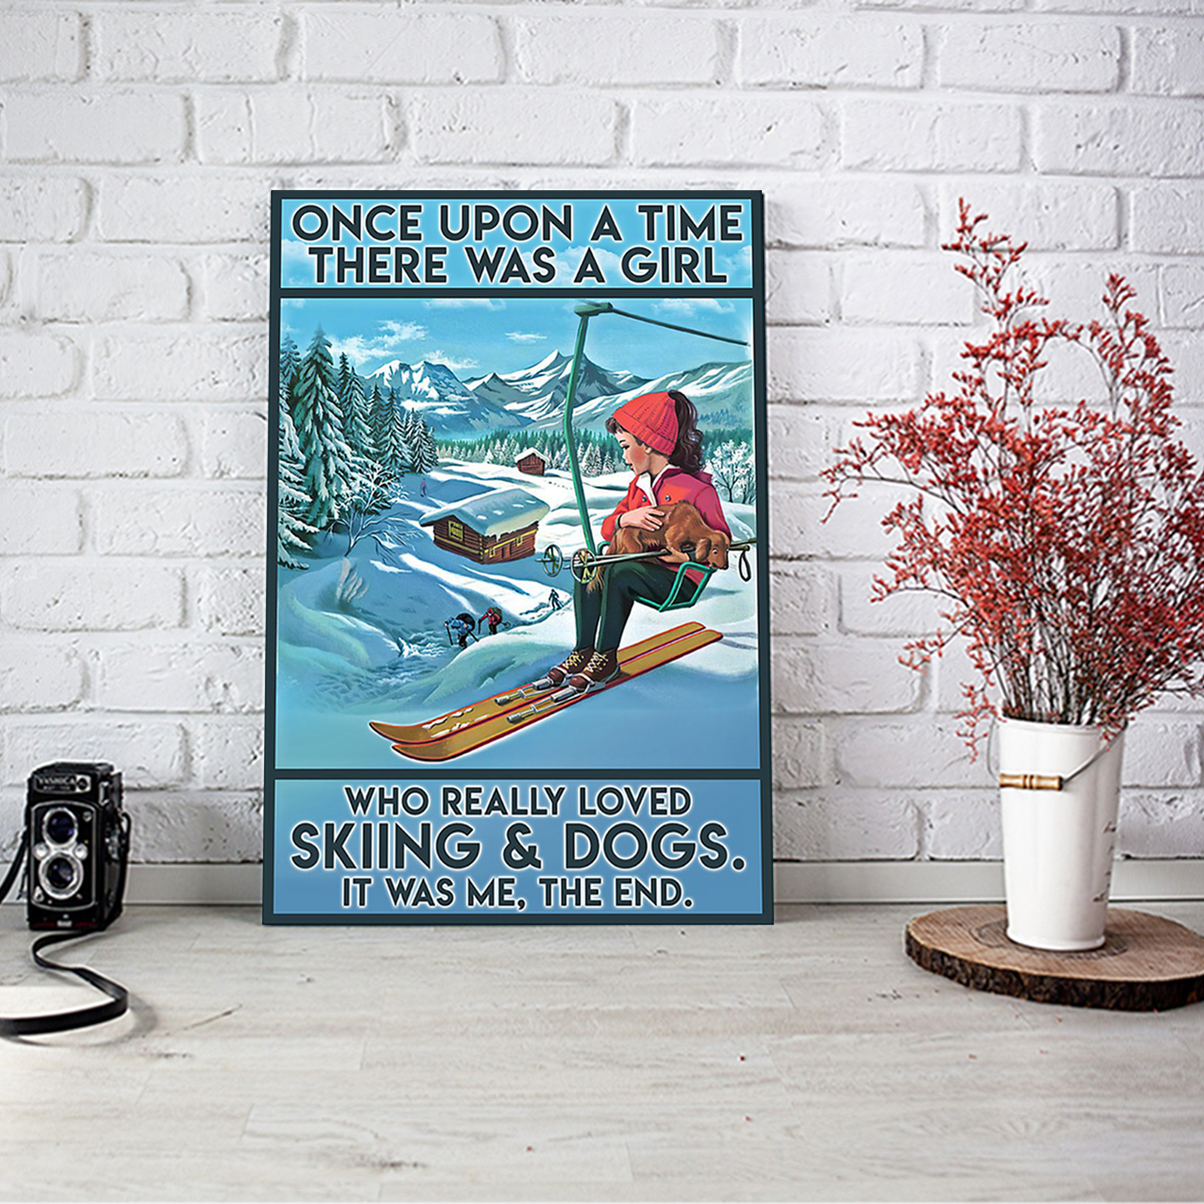 Once upon a time there was a girl who really loved skiing and dogs poster A3